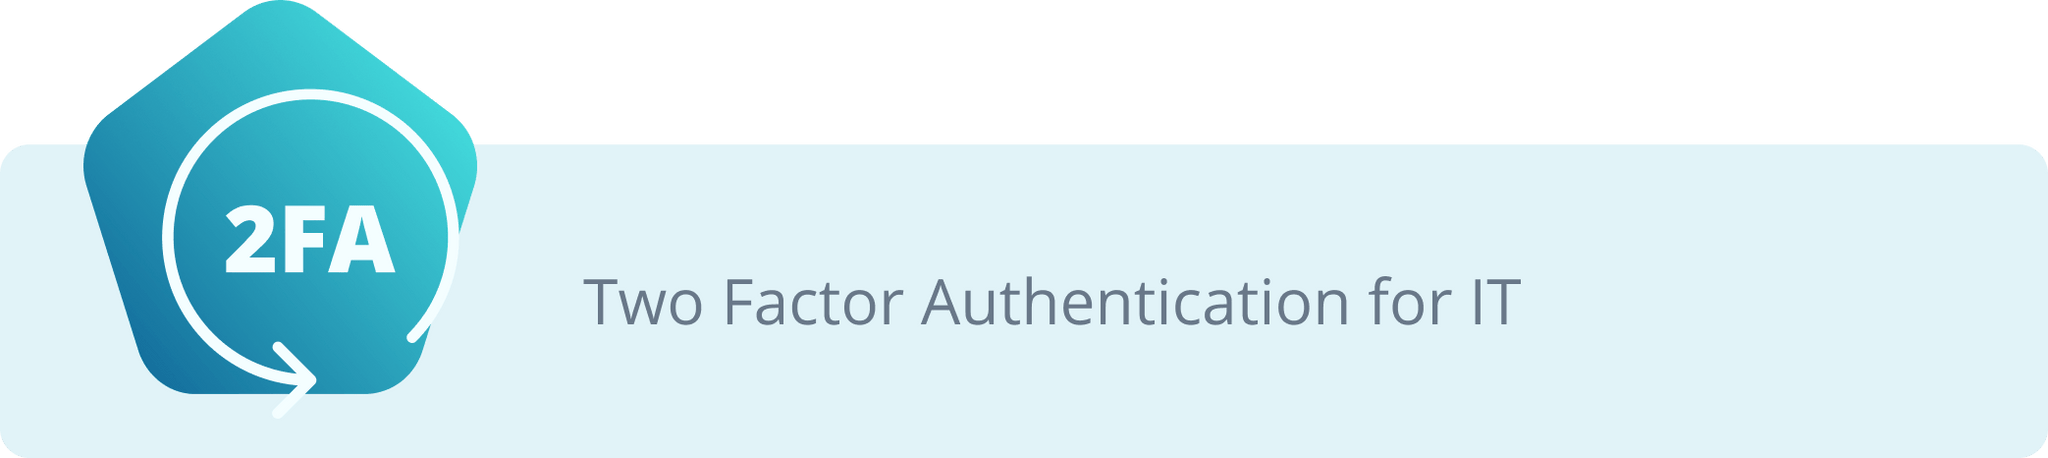 Two Factor Authentication for IT